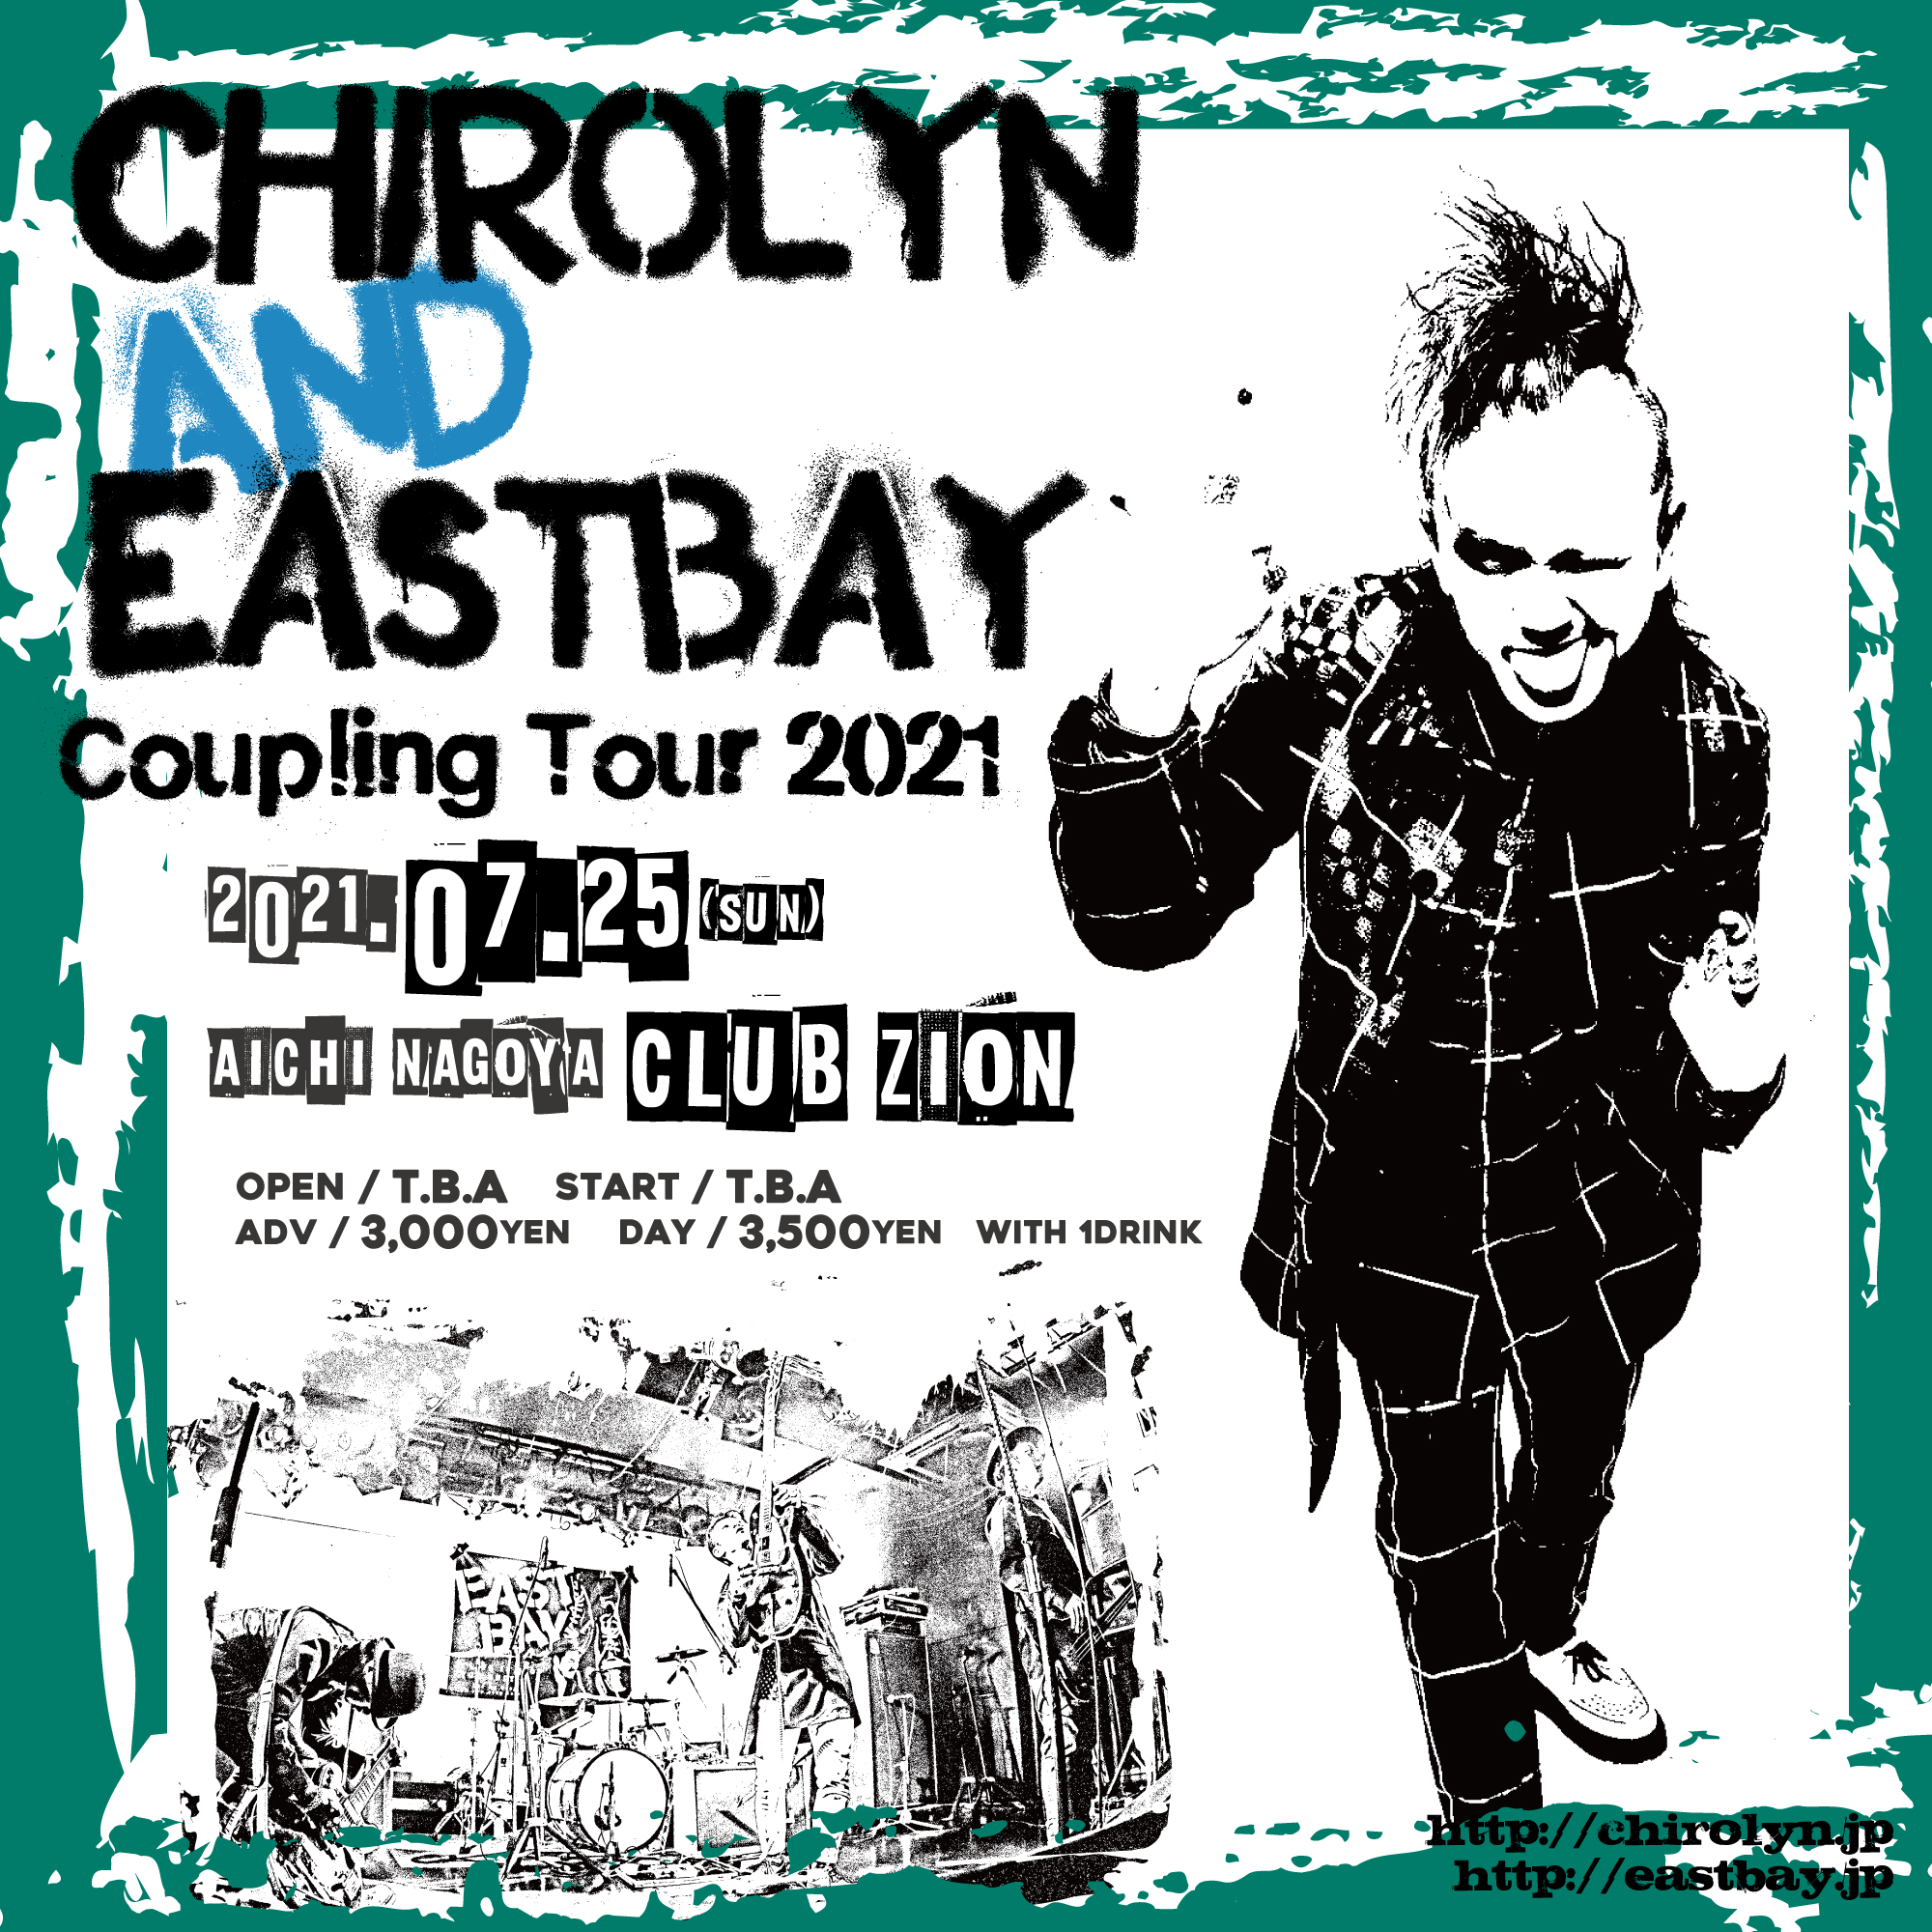 Chirolyn & EASTBAY Coupling Tour 2021 in 名古屋の写真